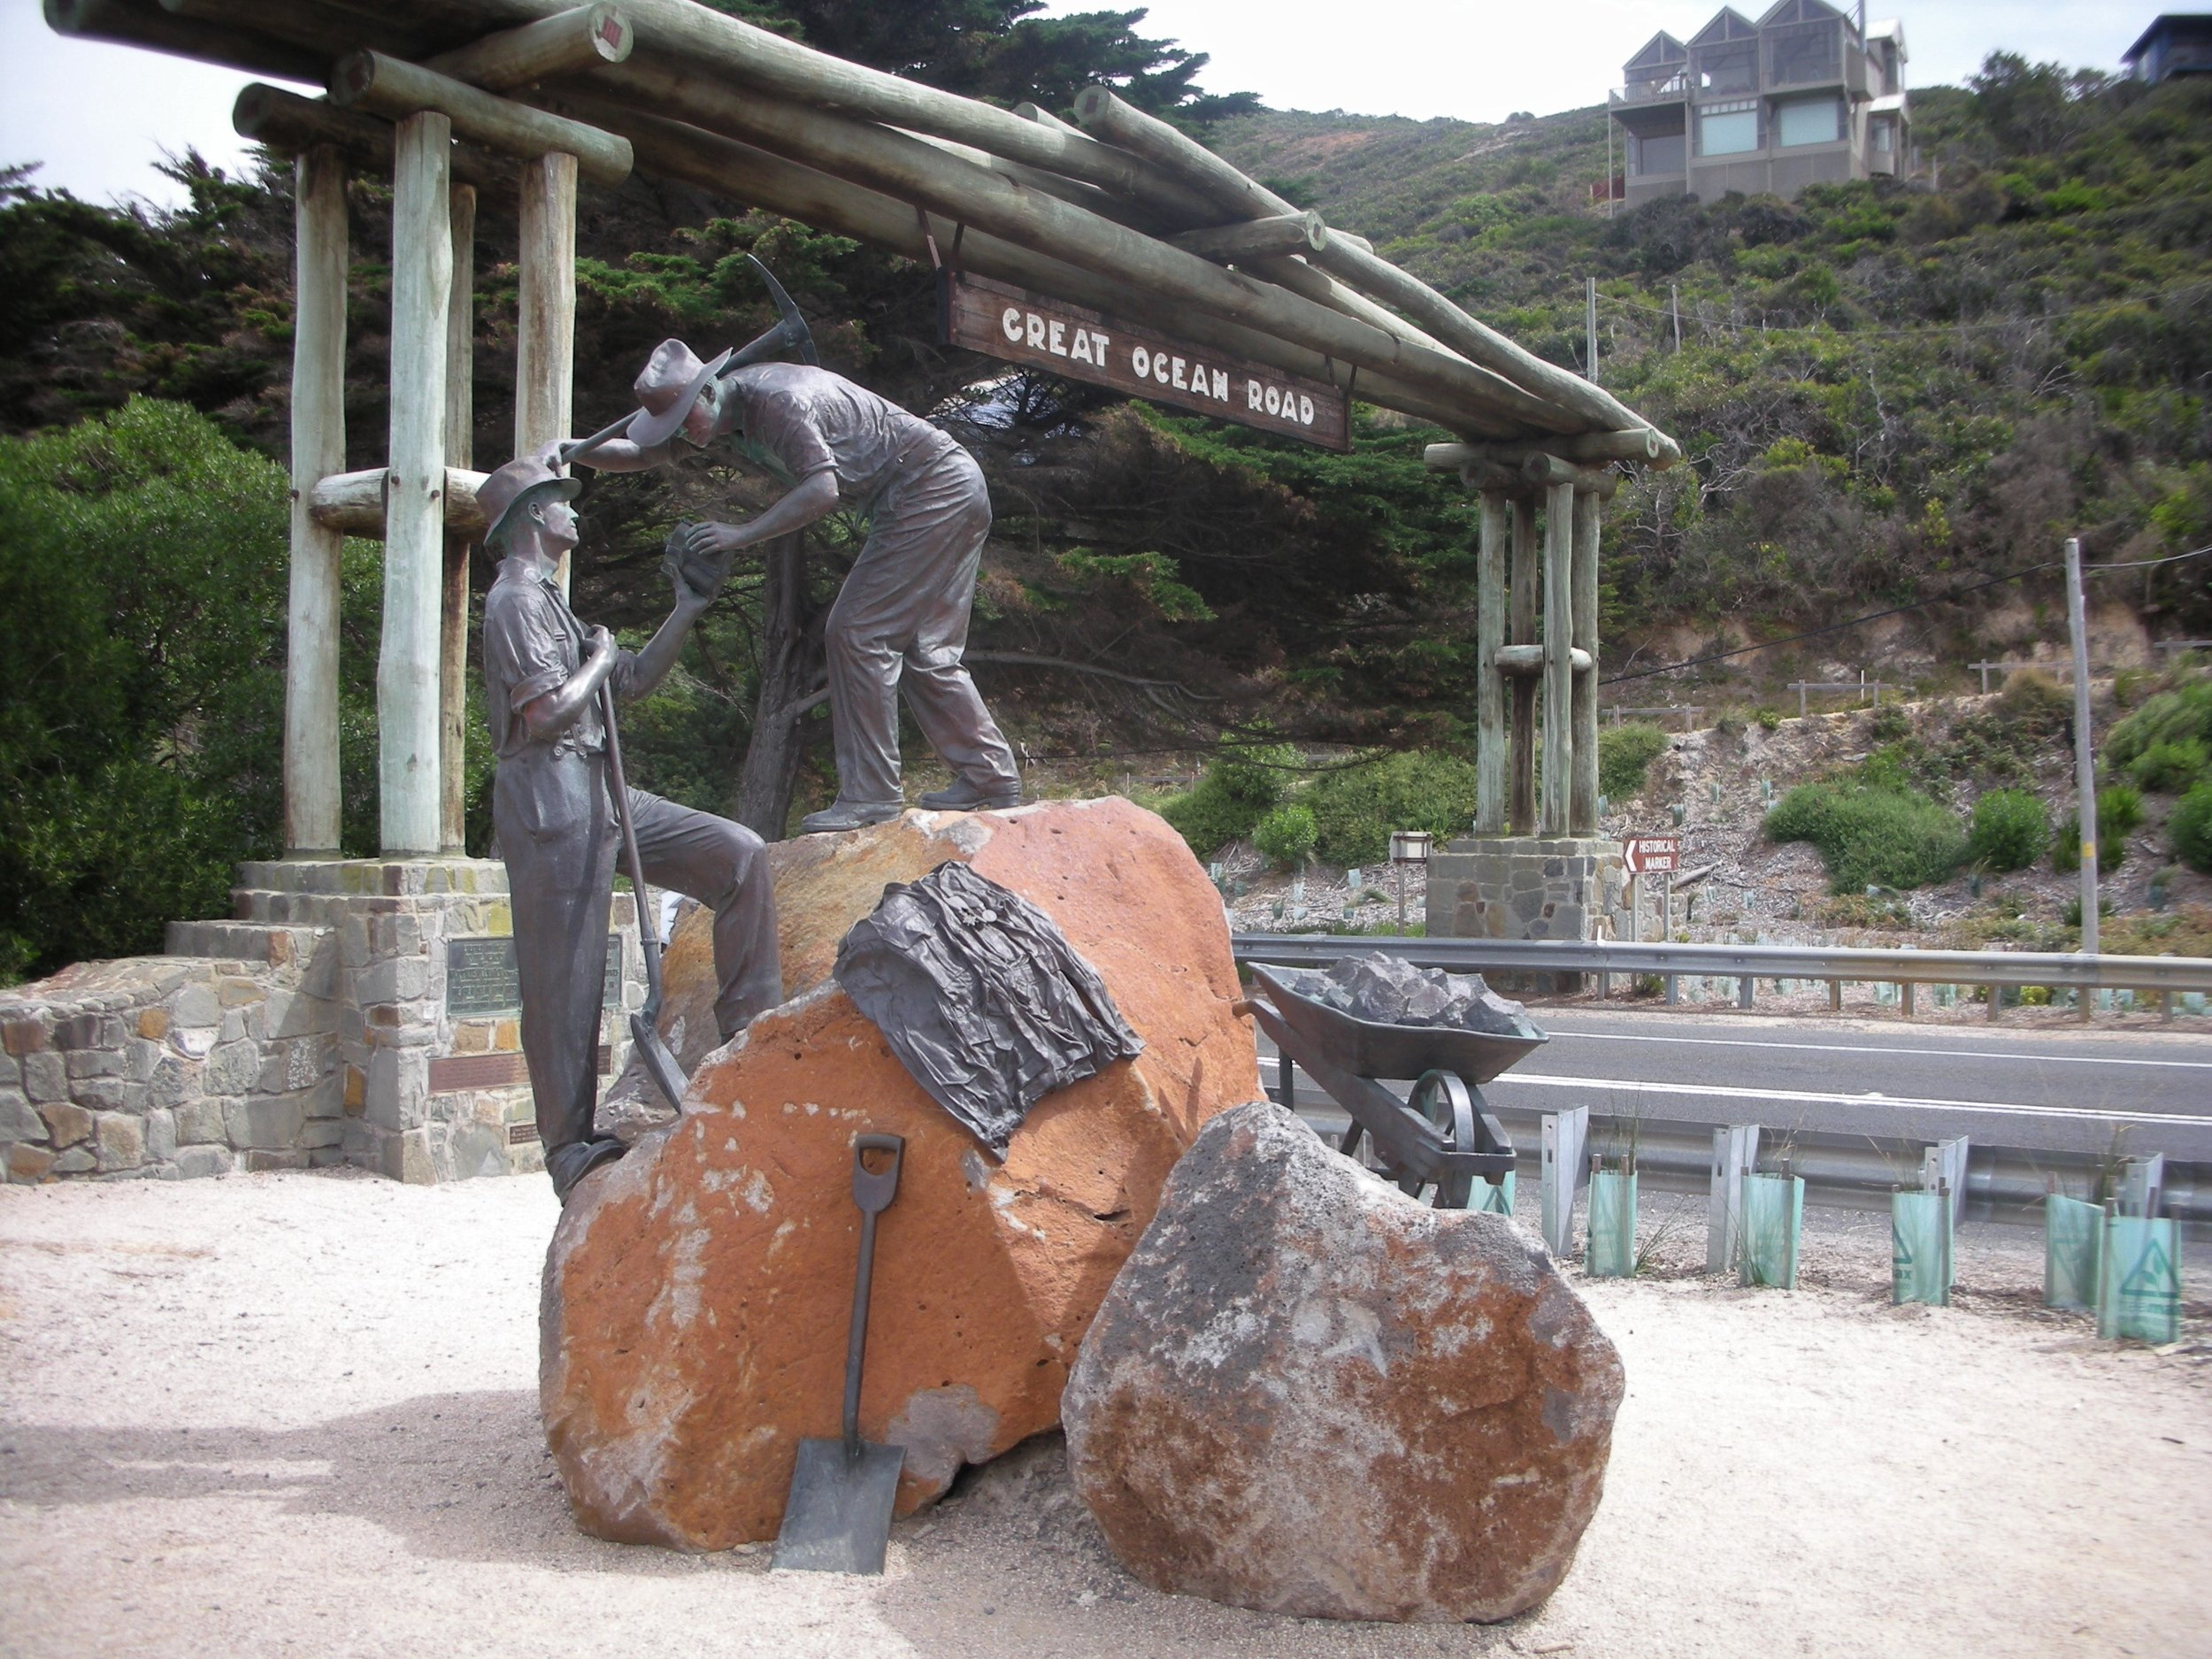 Great Ocean Road Memorial Arch.jpg